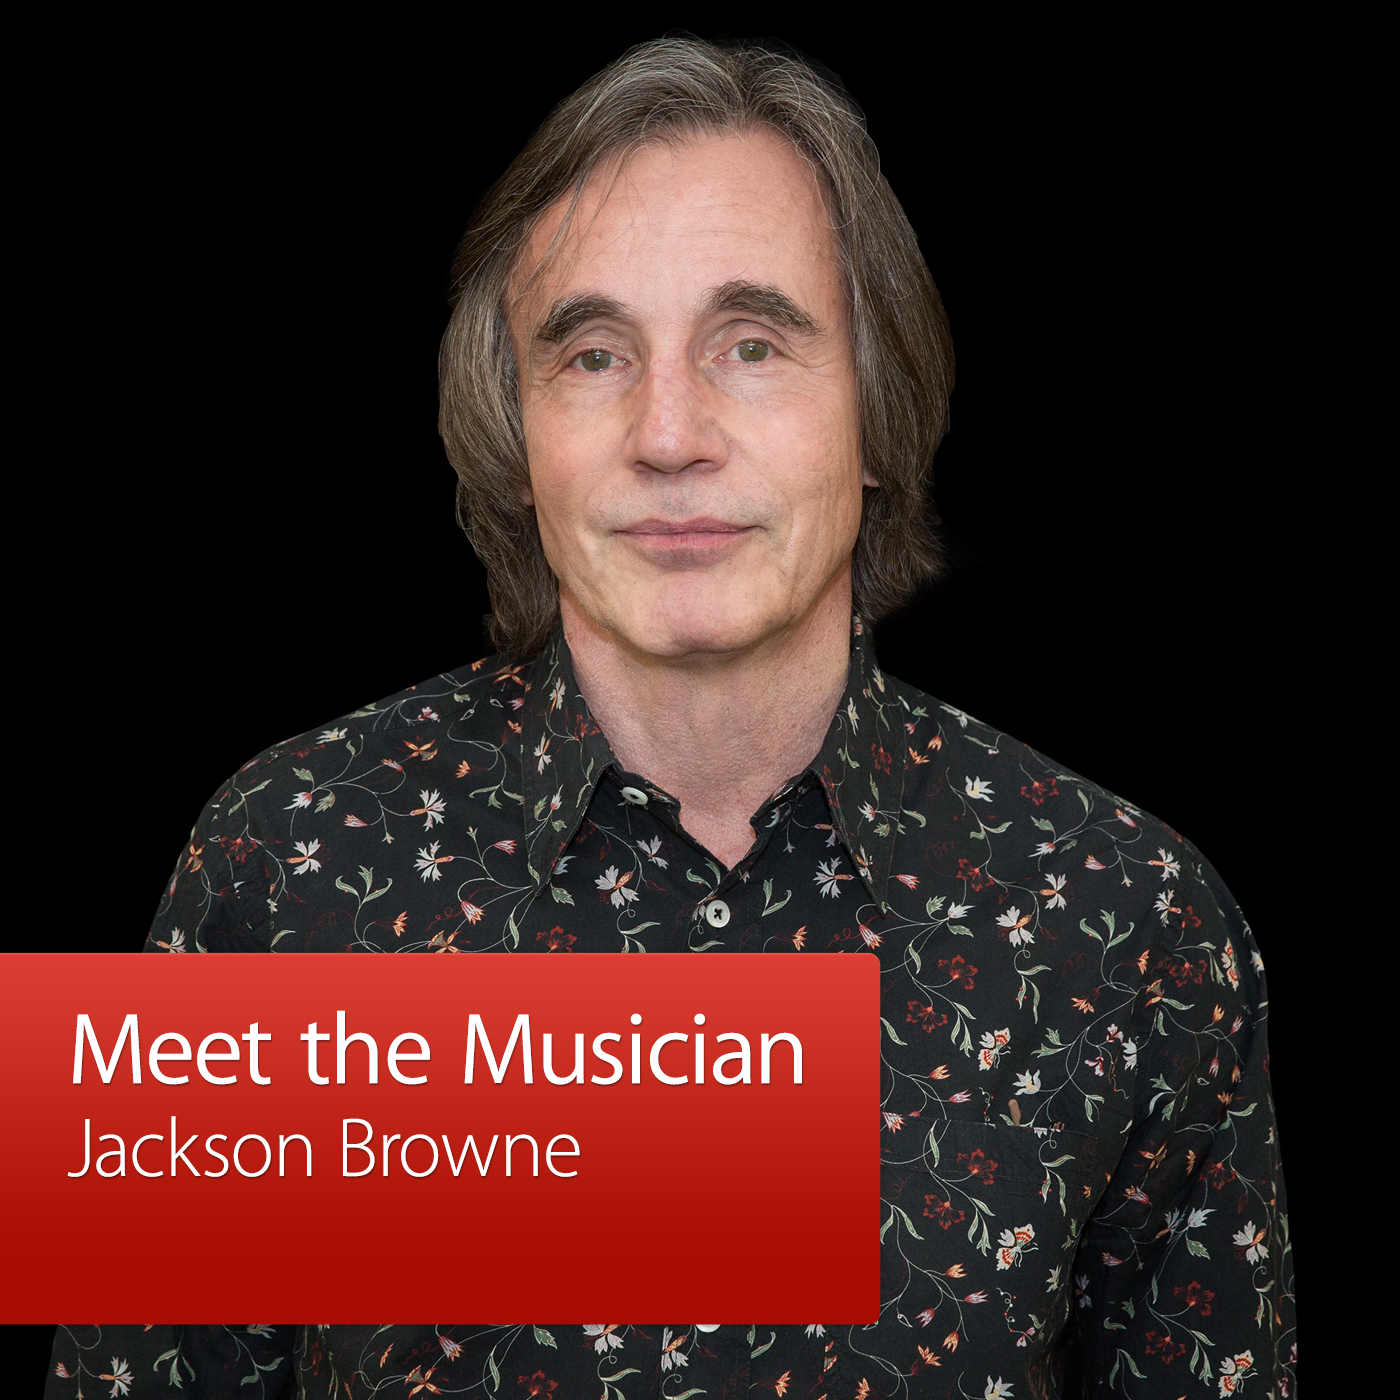 Jackson Browne: Meet the Musician